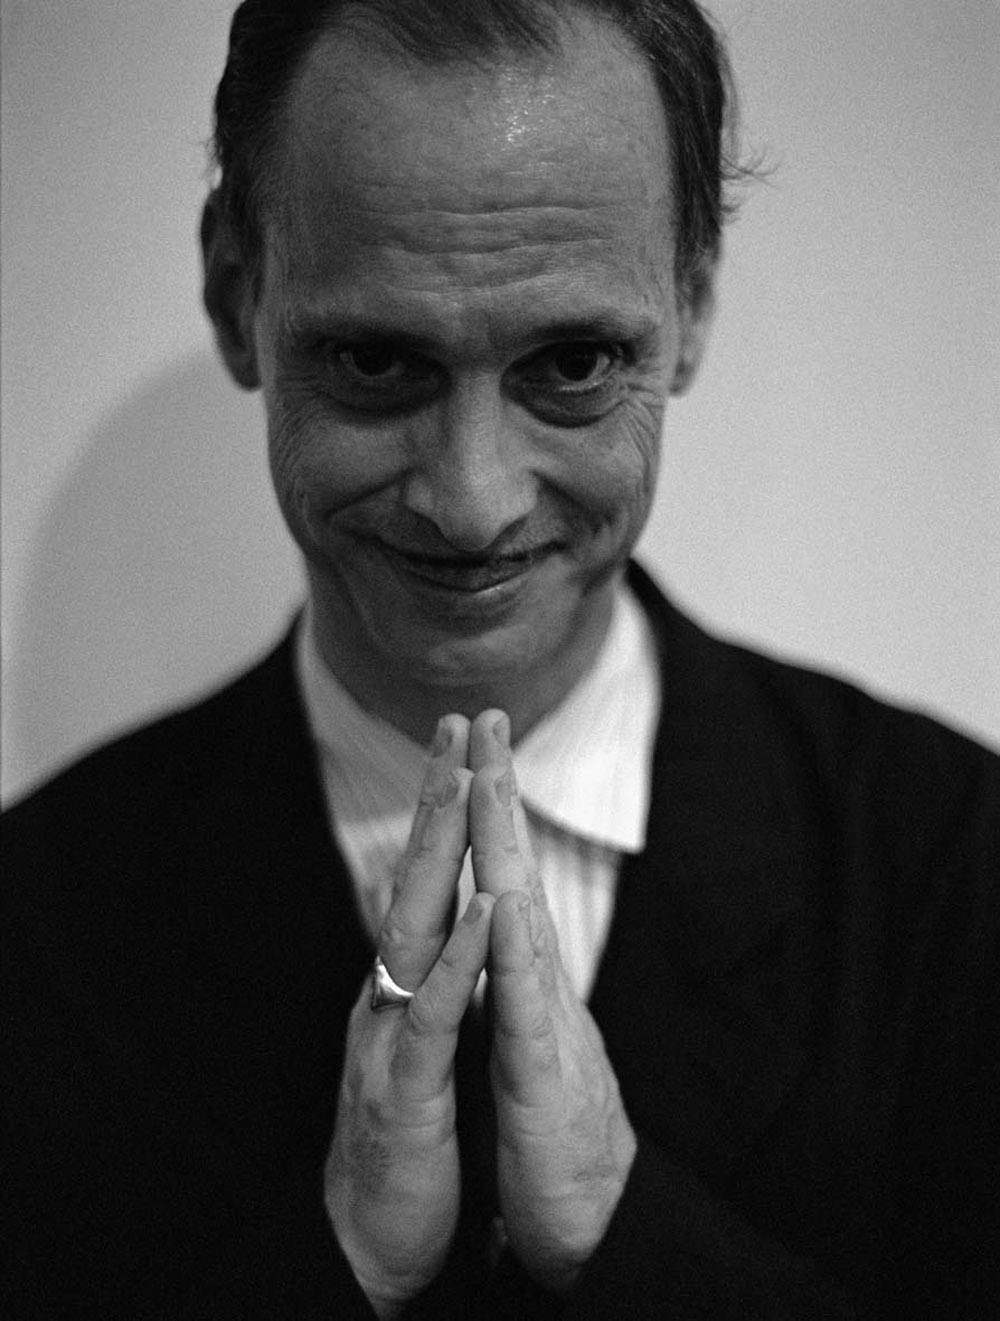 John Waters, New York, 1998, Copyright Mart Engelen